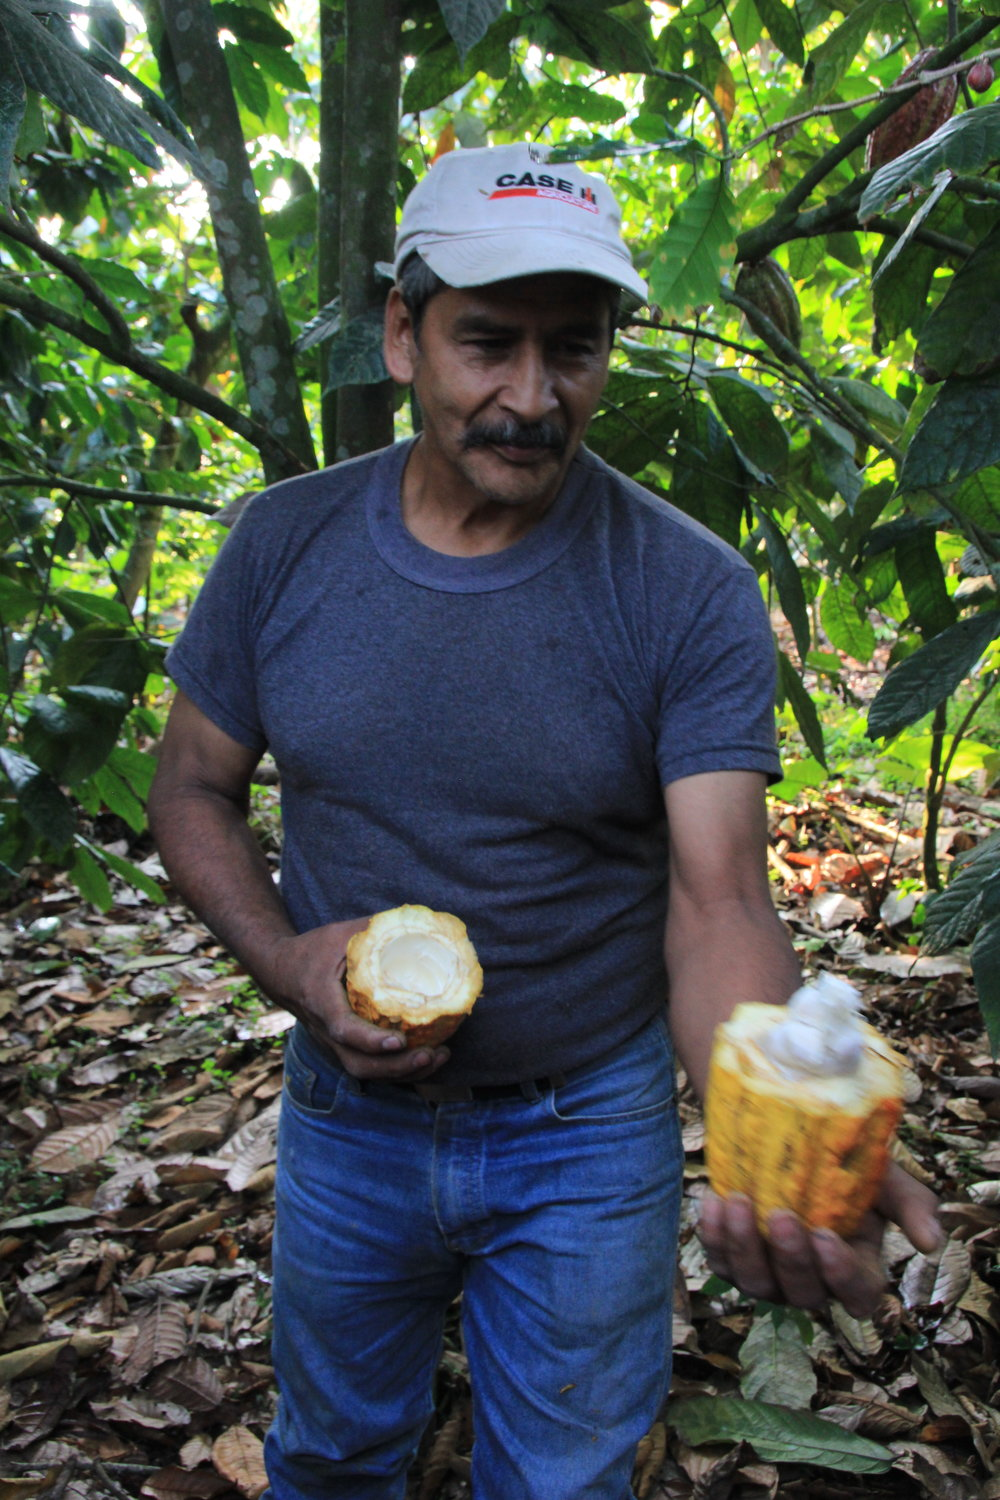 Mincho, a member of the Santa Anita Co-op grows Cacao Trees among his coffee plants, he can sell the fruit and the ones that fall contribute rich nutrients to his soil.